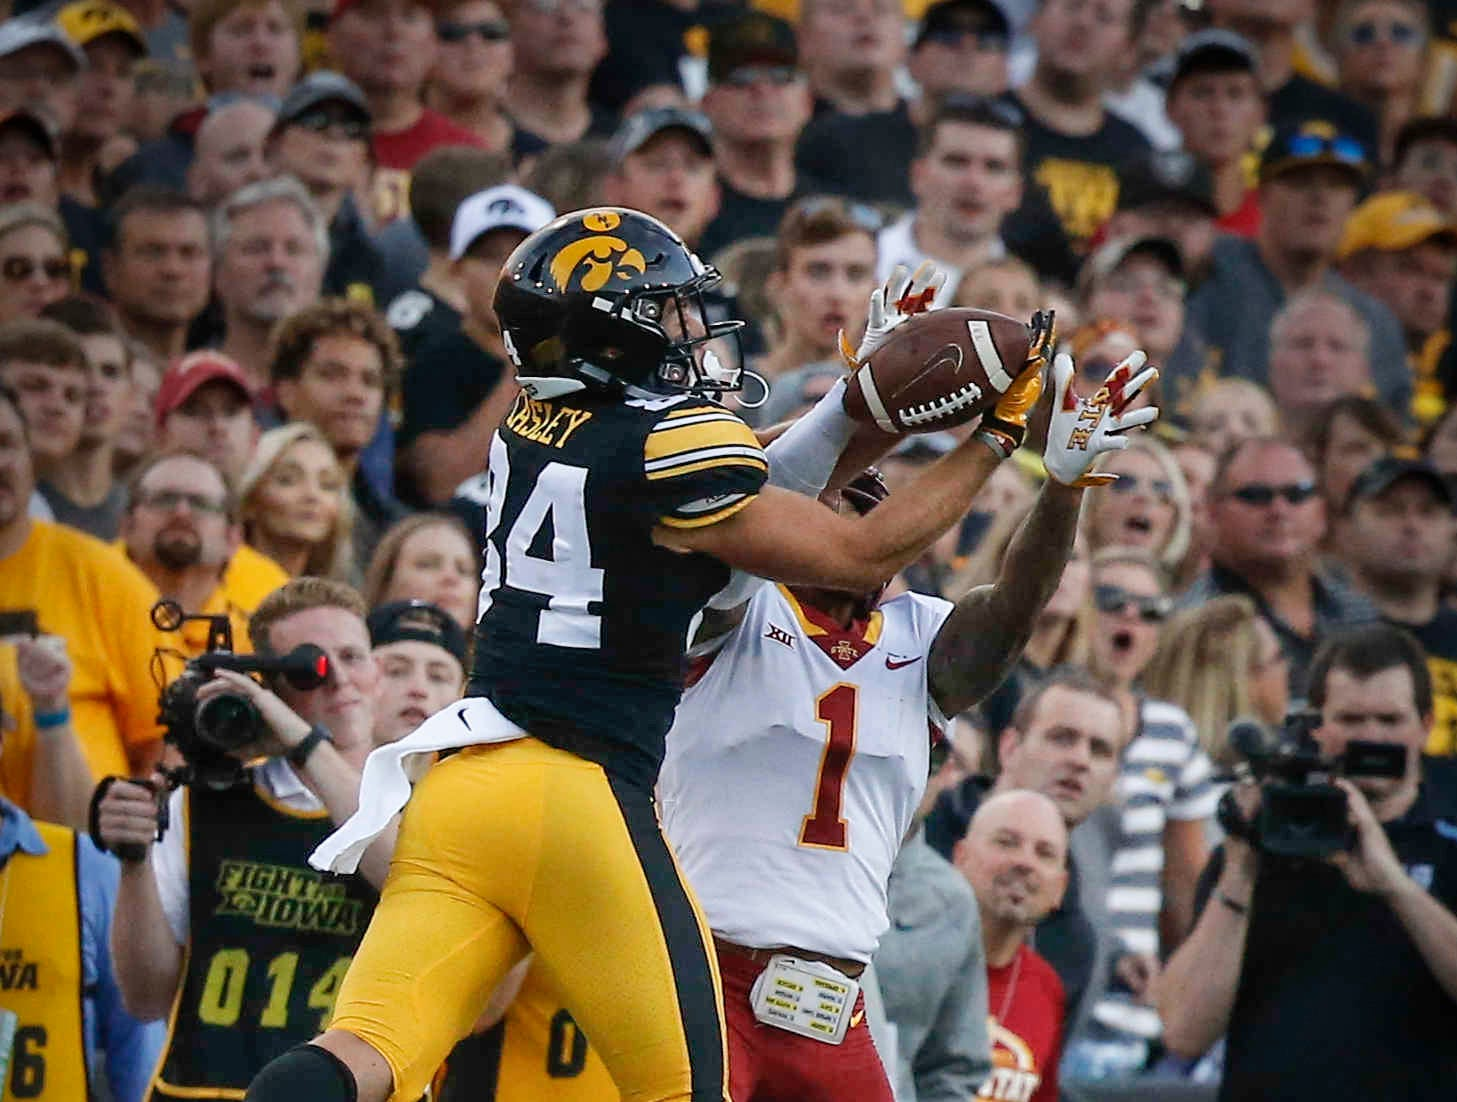 Iowa receiver Nick Easley goes up for the ball late in the game against Iowa State on Saturday, Sept. 8, 2018, at Kinnick Stadium in Iowa City.